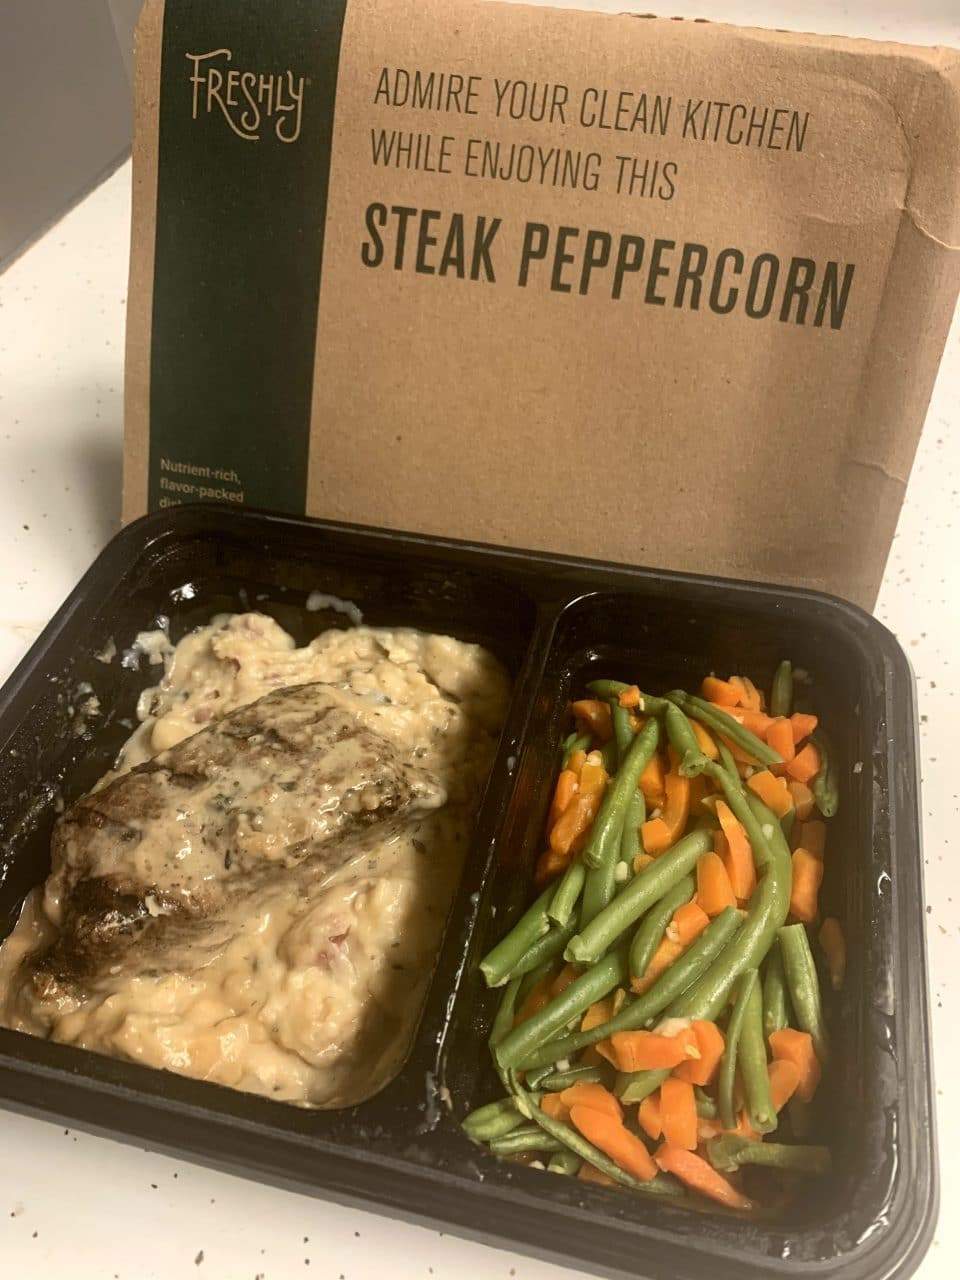 Steak Peppercorn - Freshly